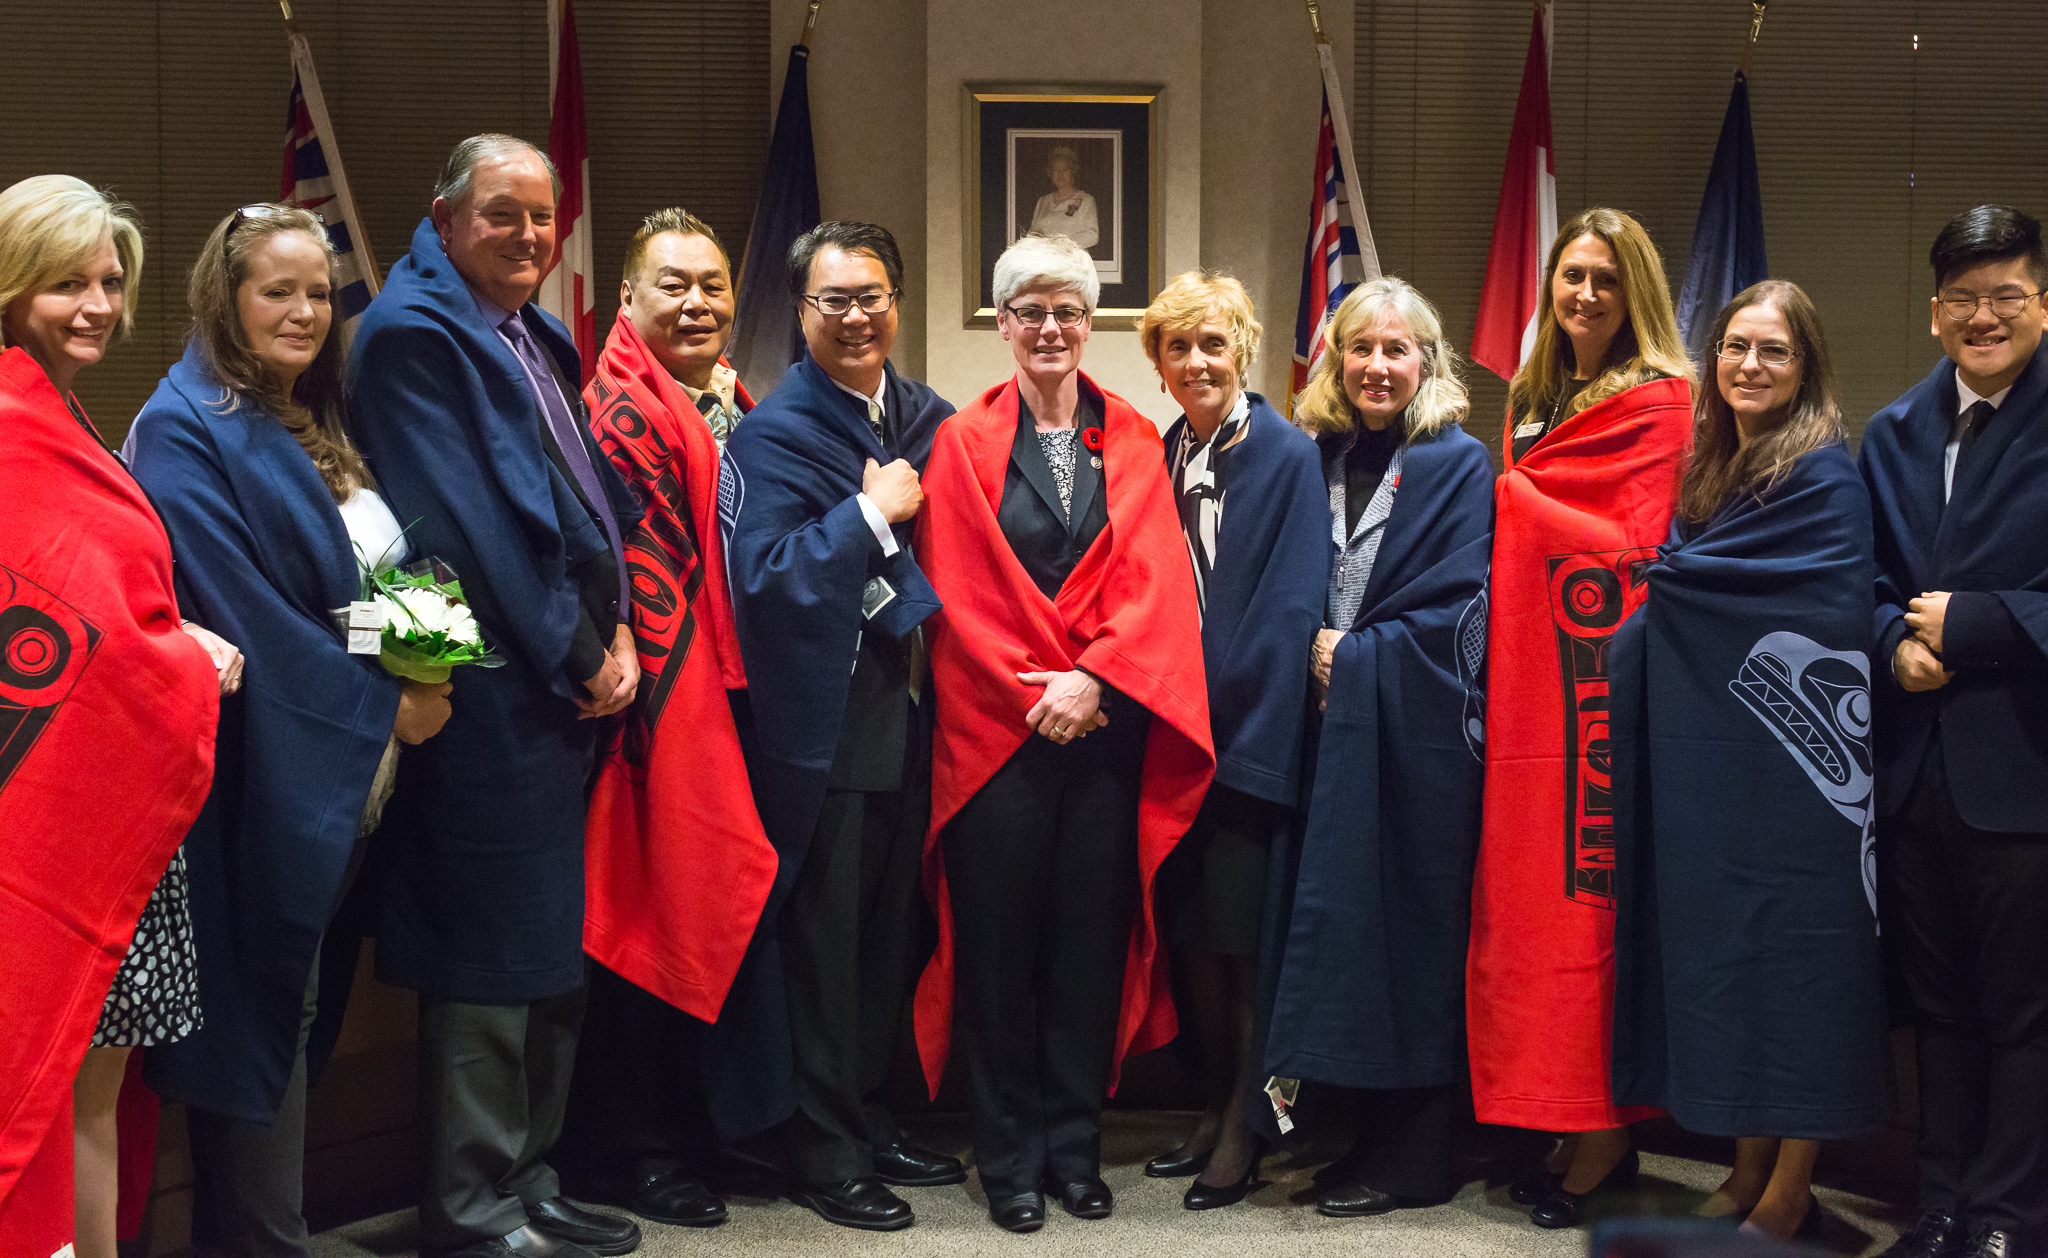 VSB Board of Education (left to right in image): Dianne Turner (special advisor), Carrie Bercic, Ballantyne, Ken Clement, Allan Wong, Janet Fraser (chair), Joy Alexander, Judy Zaichkowsky, Estrellita Gonzalez, Lisa Dominato, and Eugene Jeoung (student trustee).